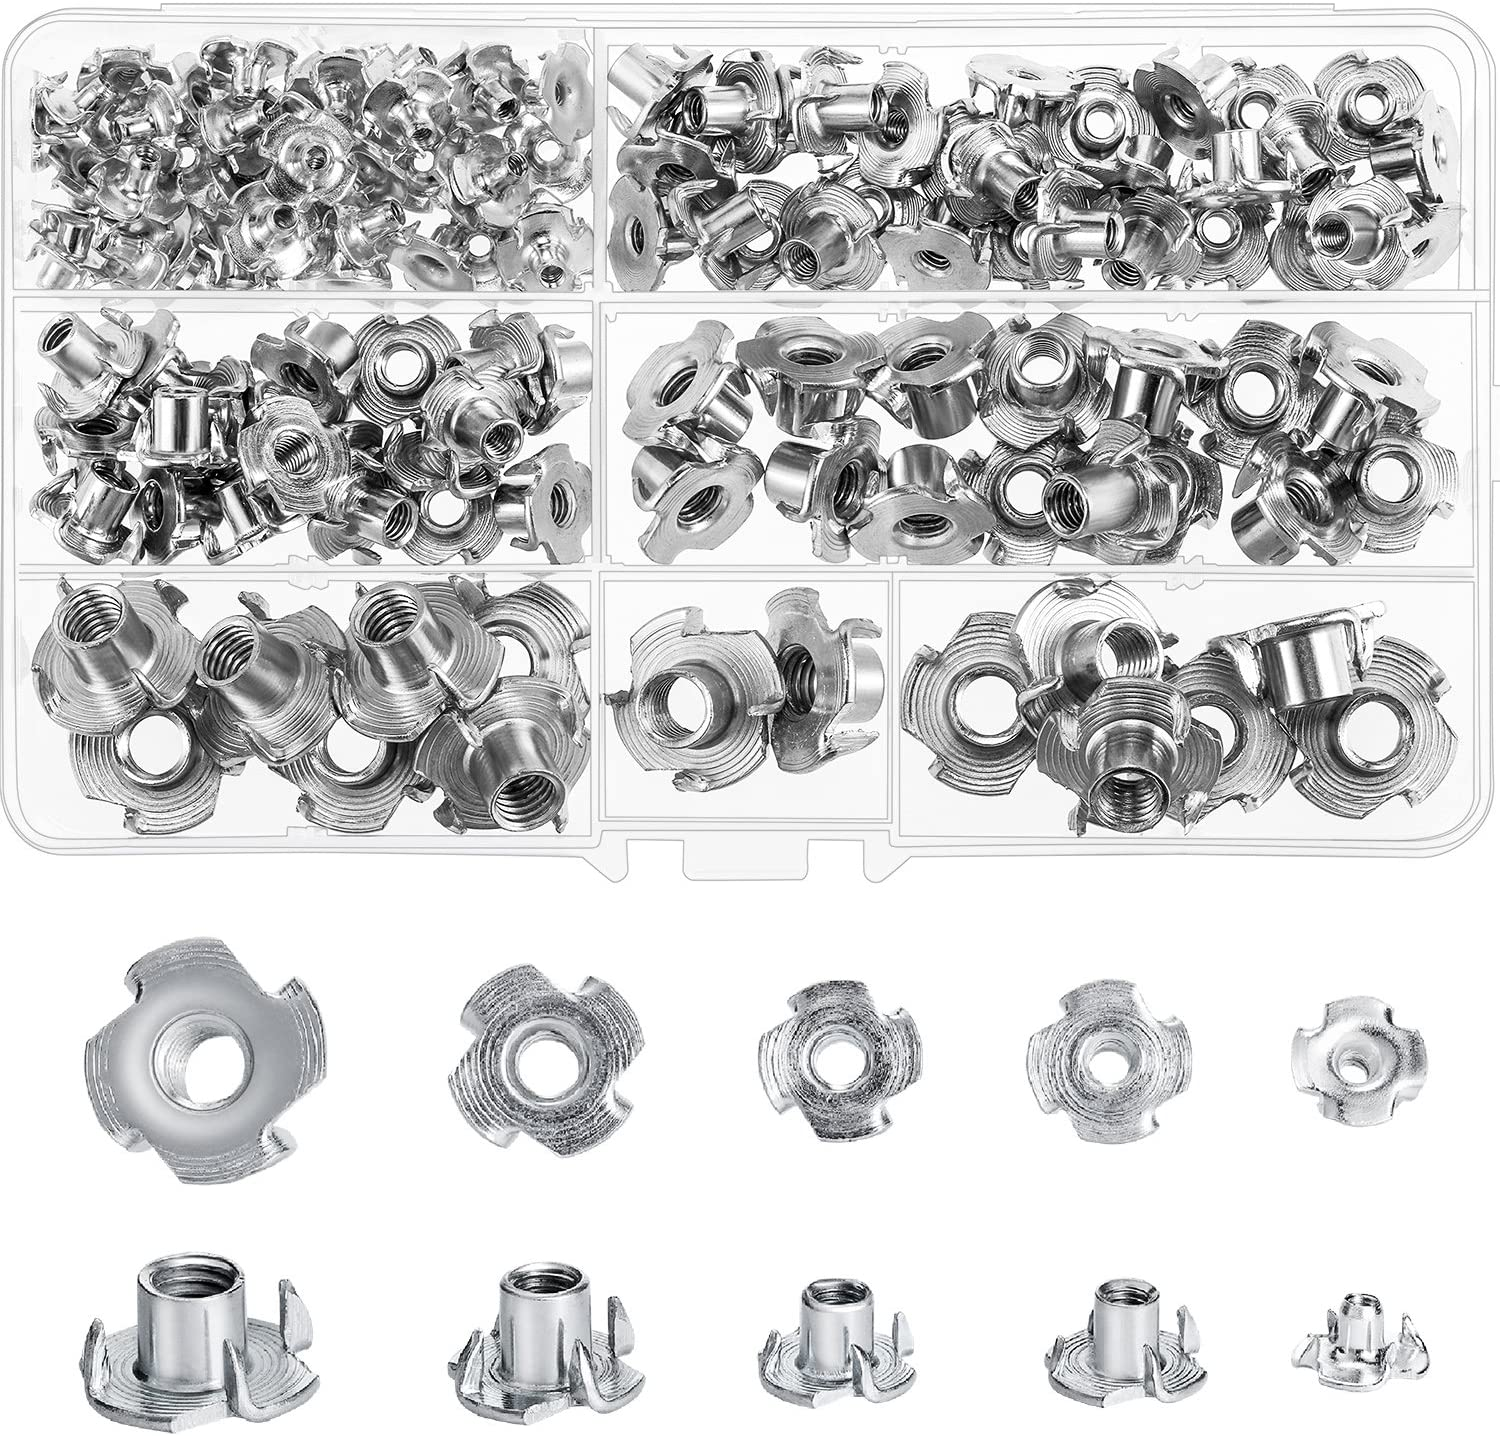 M3// M4// M5// M6// M8// M10 binifiMux 145pcs Metric 4 Pronged Tee Nuts Assortment Kit for Inserted in Wood Furniture Carbon Steel Silver Tone